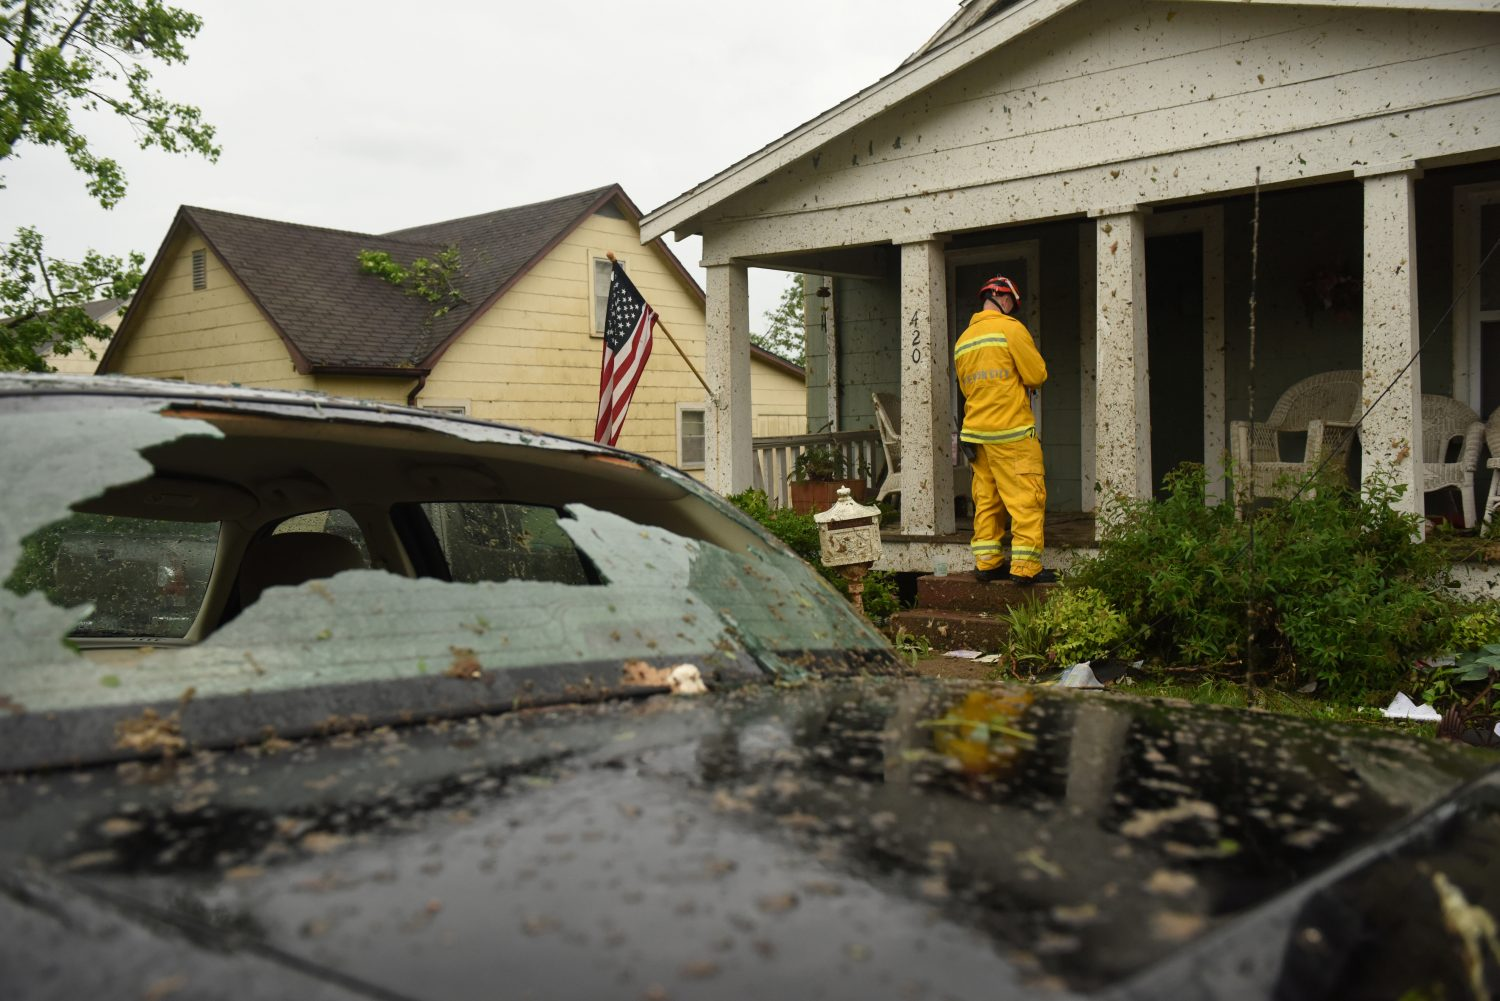 A member of the Jefferson City Fire Department checks houses for people on Woodland Avenue following a tornado touchdown overnight in Jefferson City, Missouri, U.S. May 23, 2019. REUTERS/Antranik Tavitian